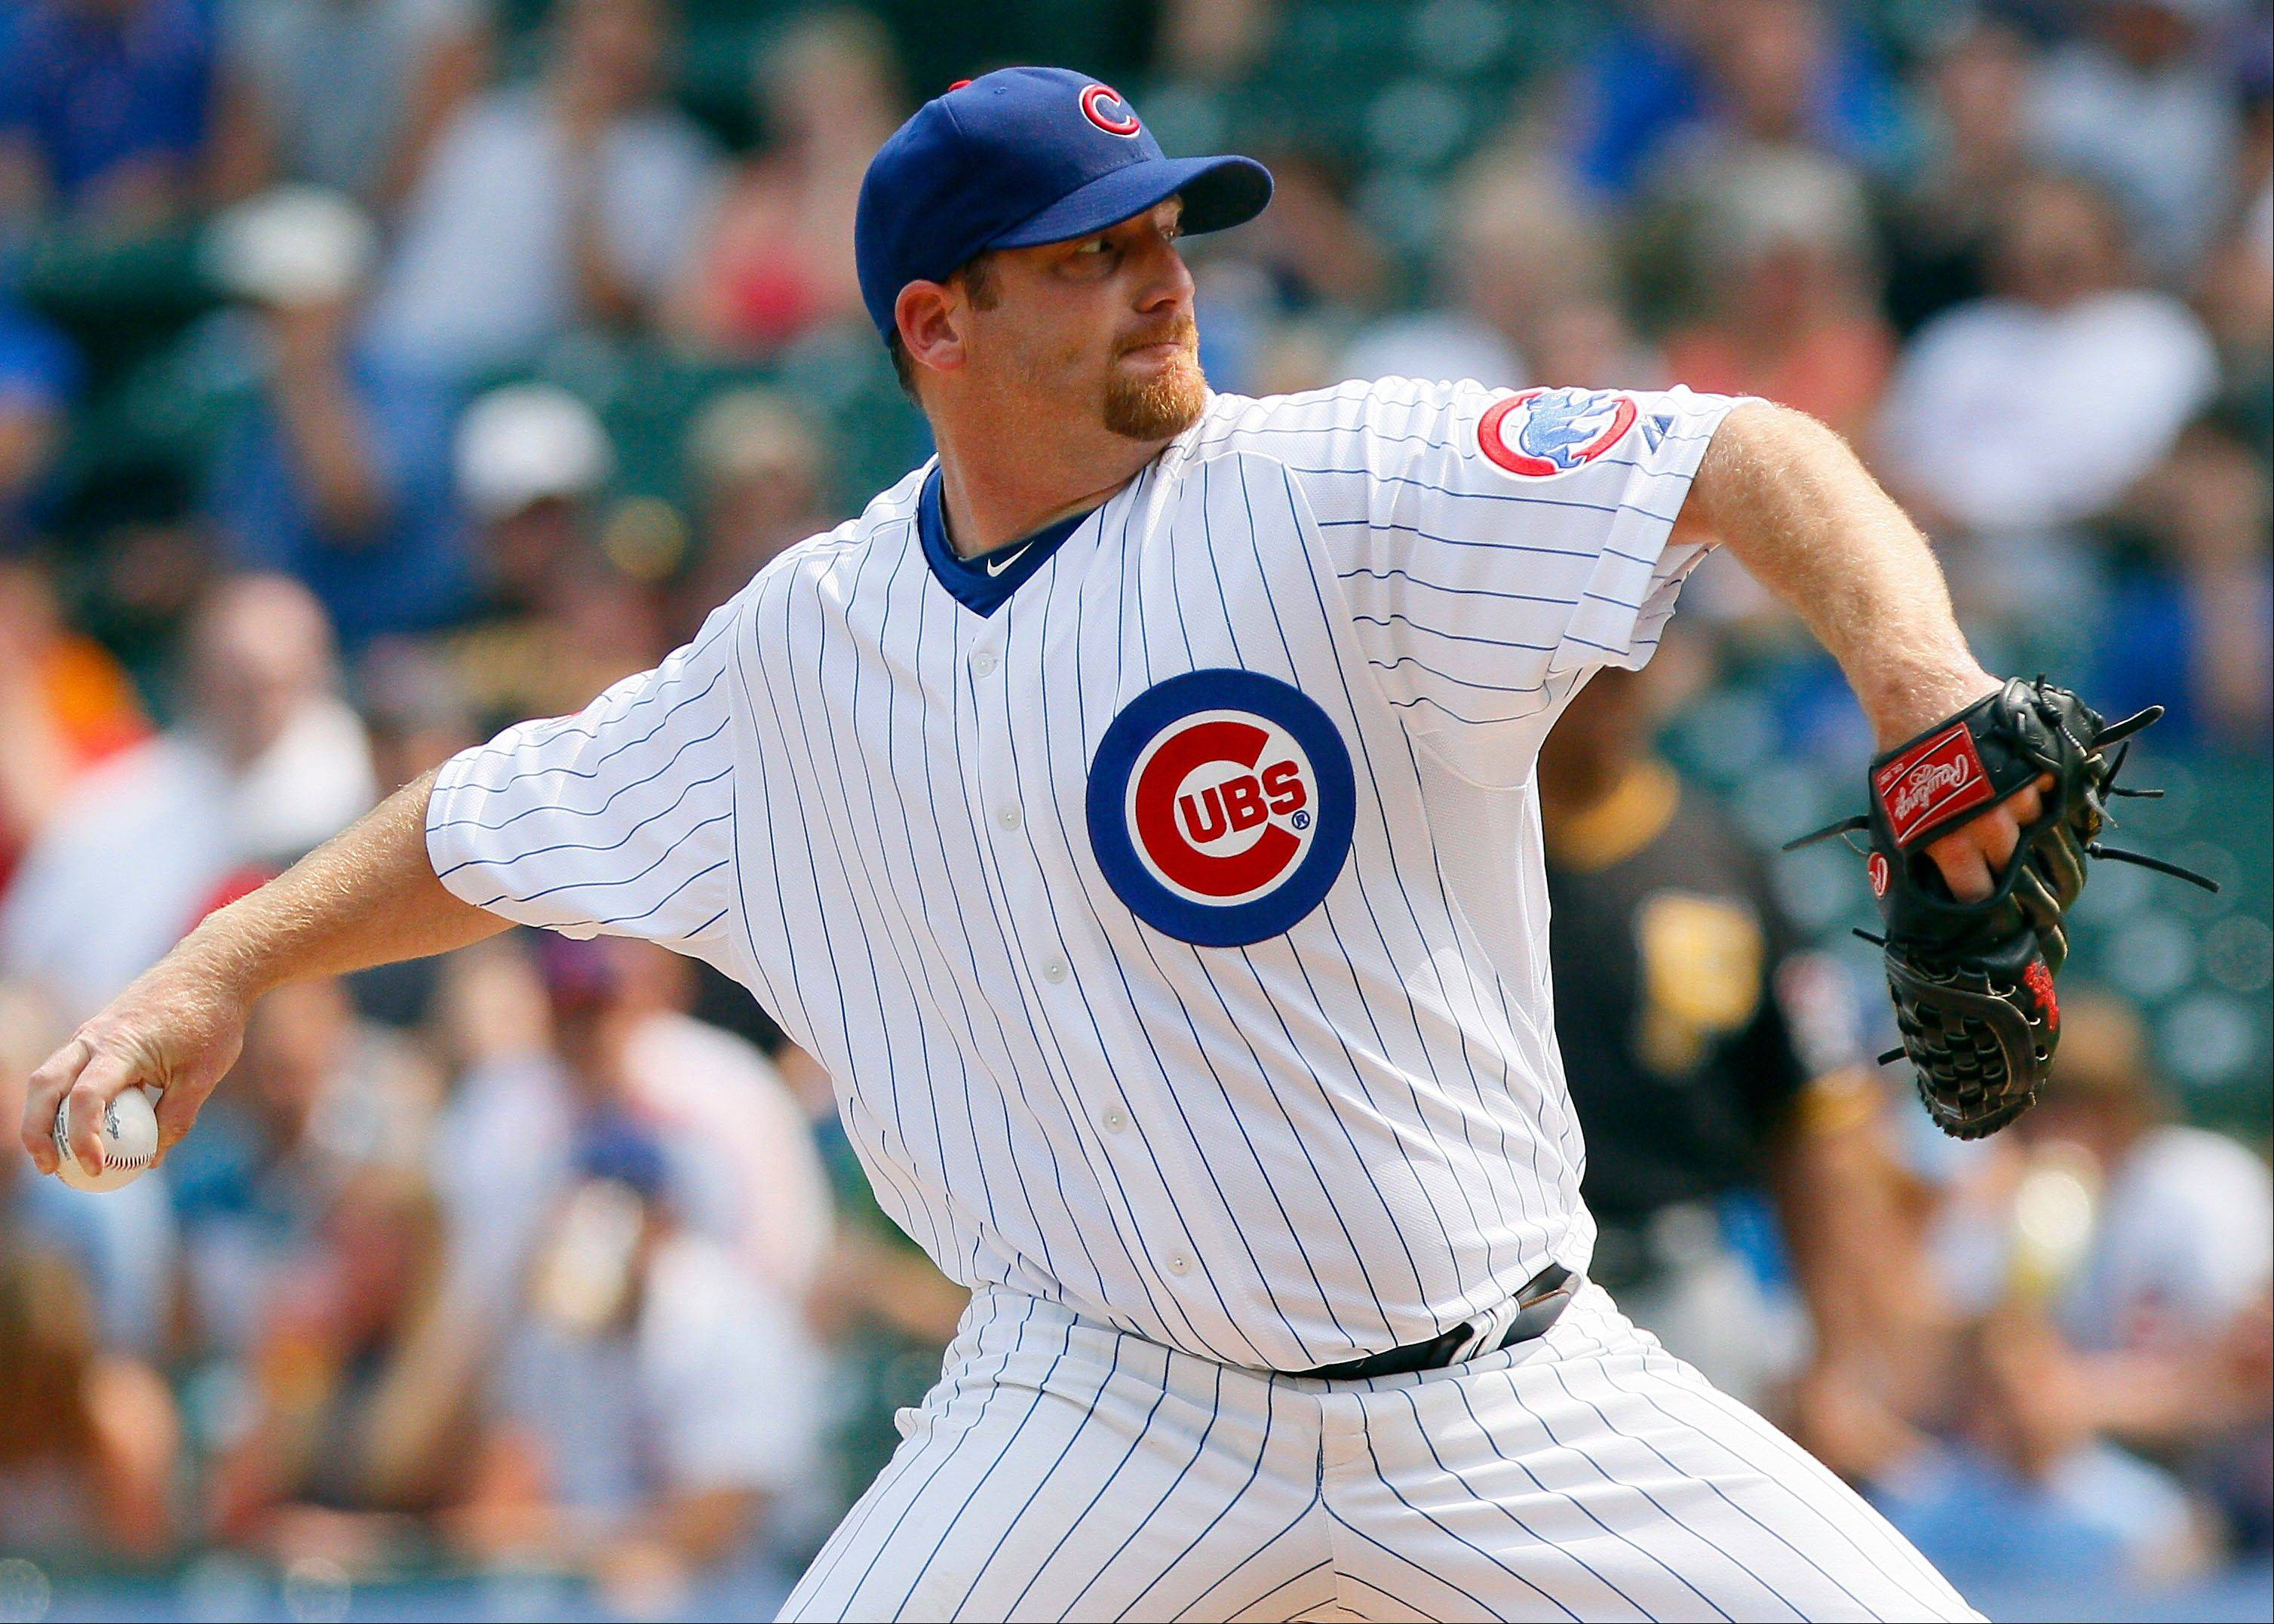 The Cubs� Ryan Dempster, who has worked at least 200 innings as a starter in each of the three seasons from 2008-10, needs to pitch just under 30 more innings to reach that threshold this campaign.